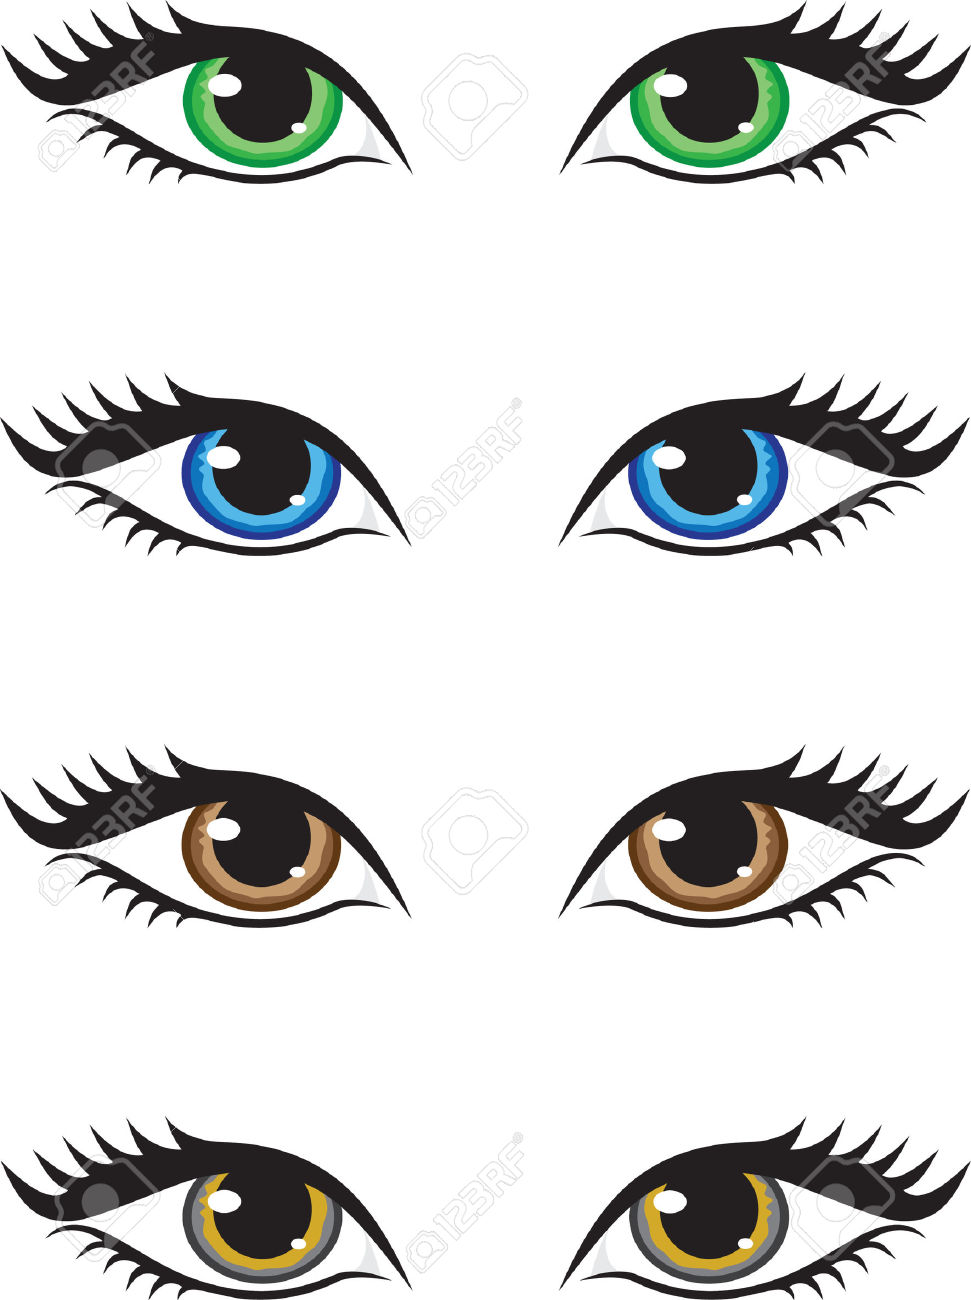 Four Pairs Of Eyes Of Different Colors, Green, Blue, Brown And.